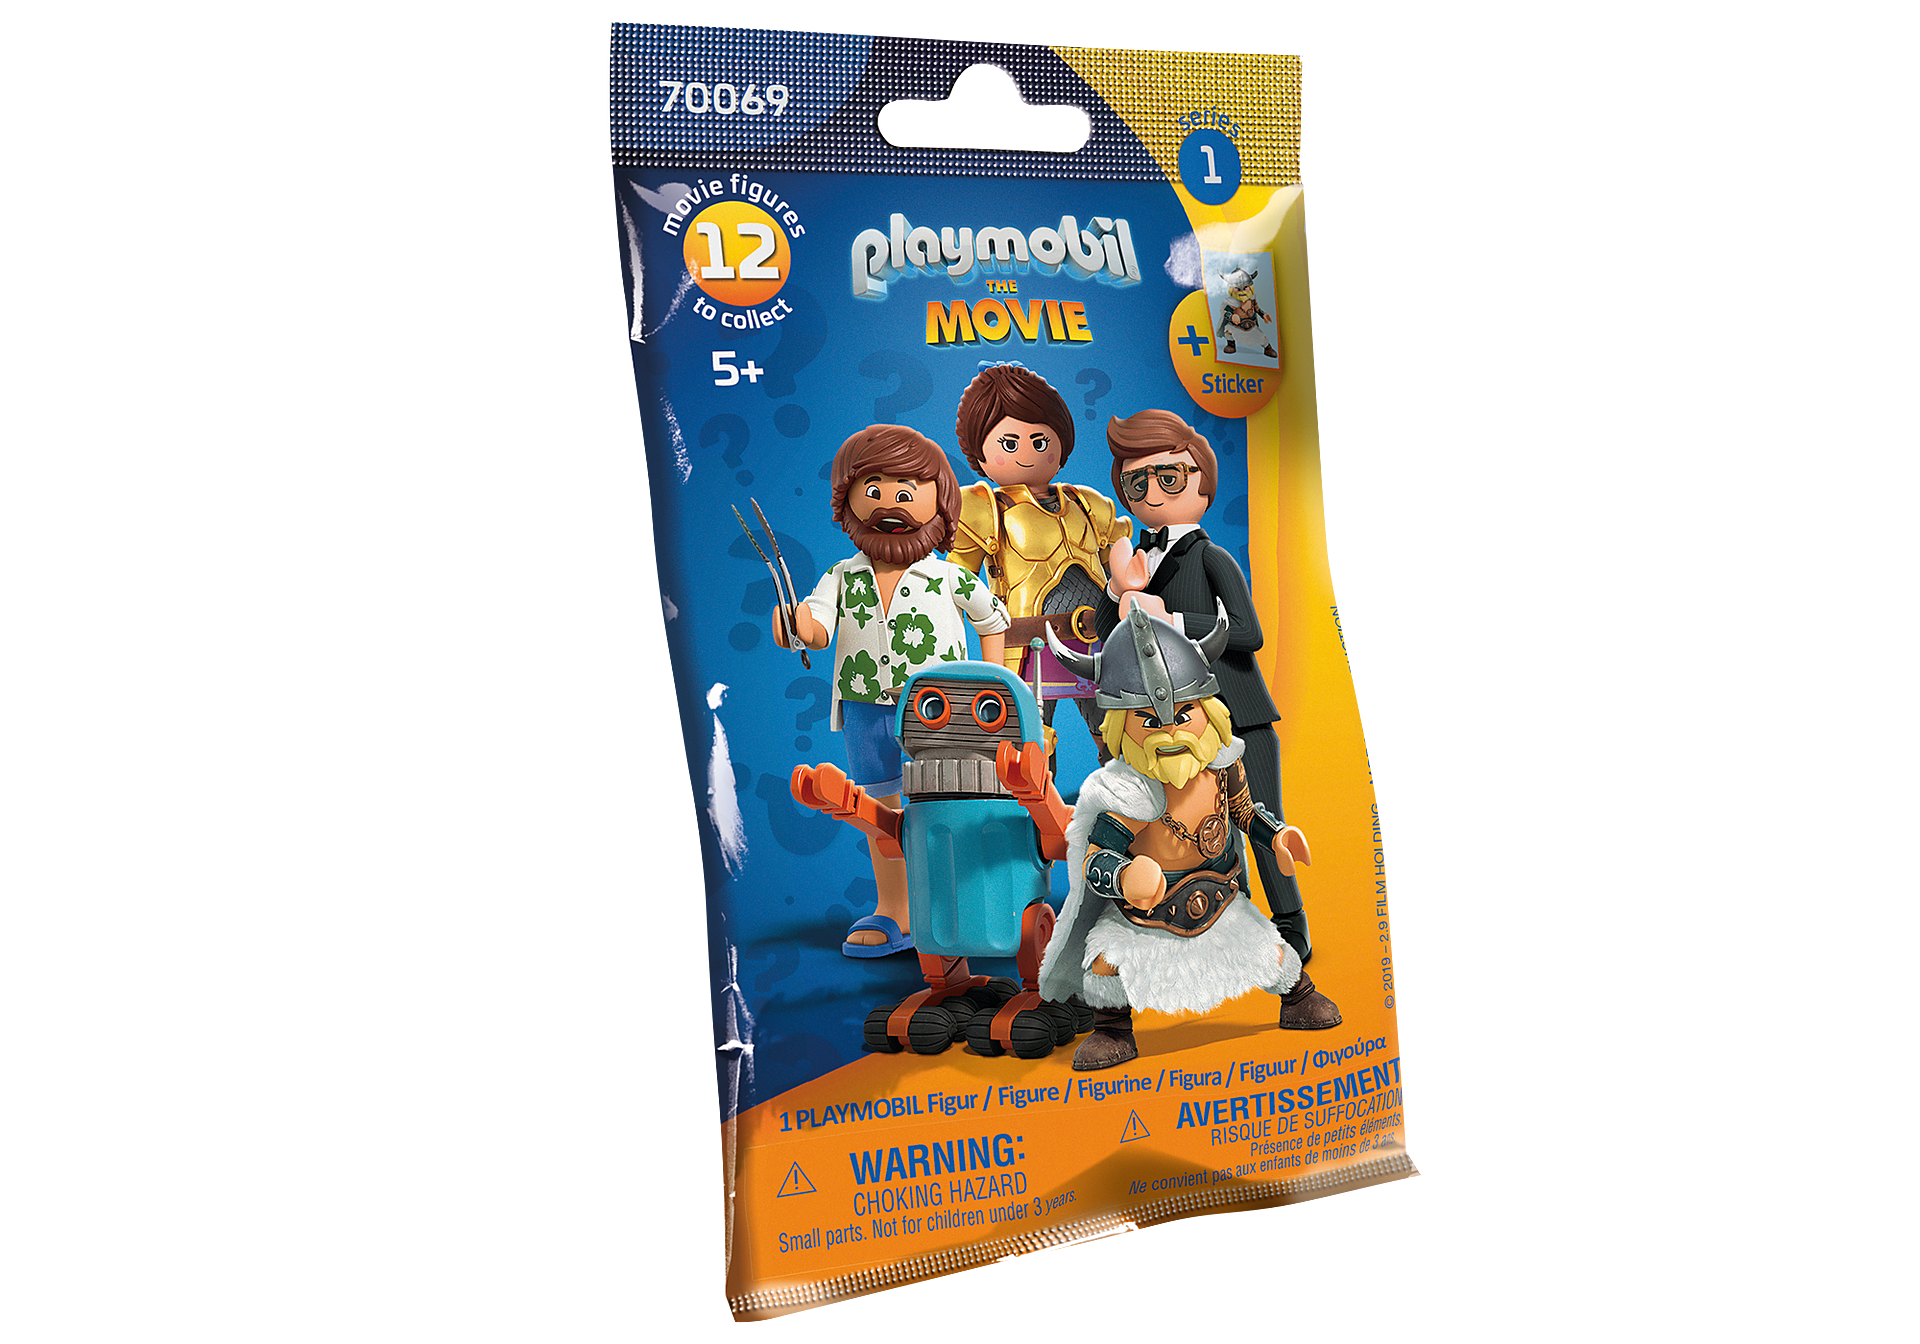 70069 PLAYMOBIL:THE MOVIE Figures (Series 1) zoom image2